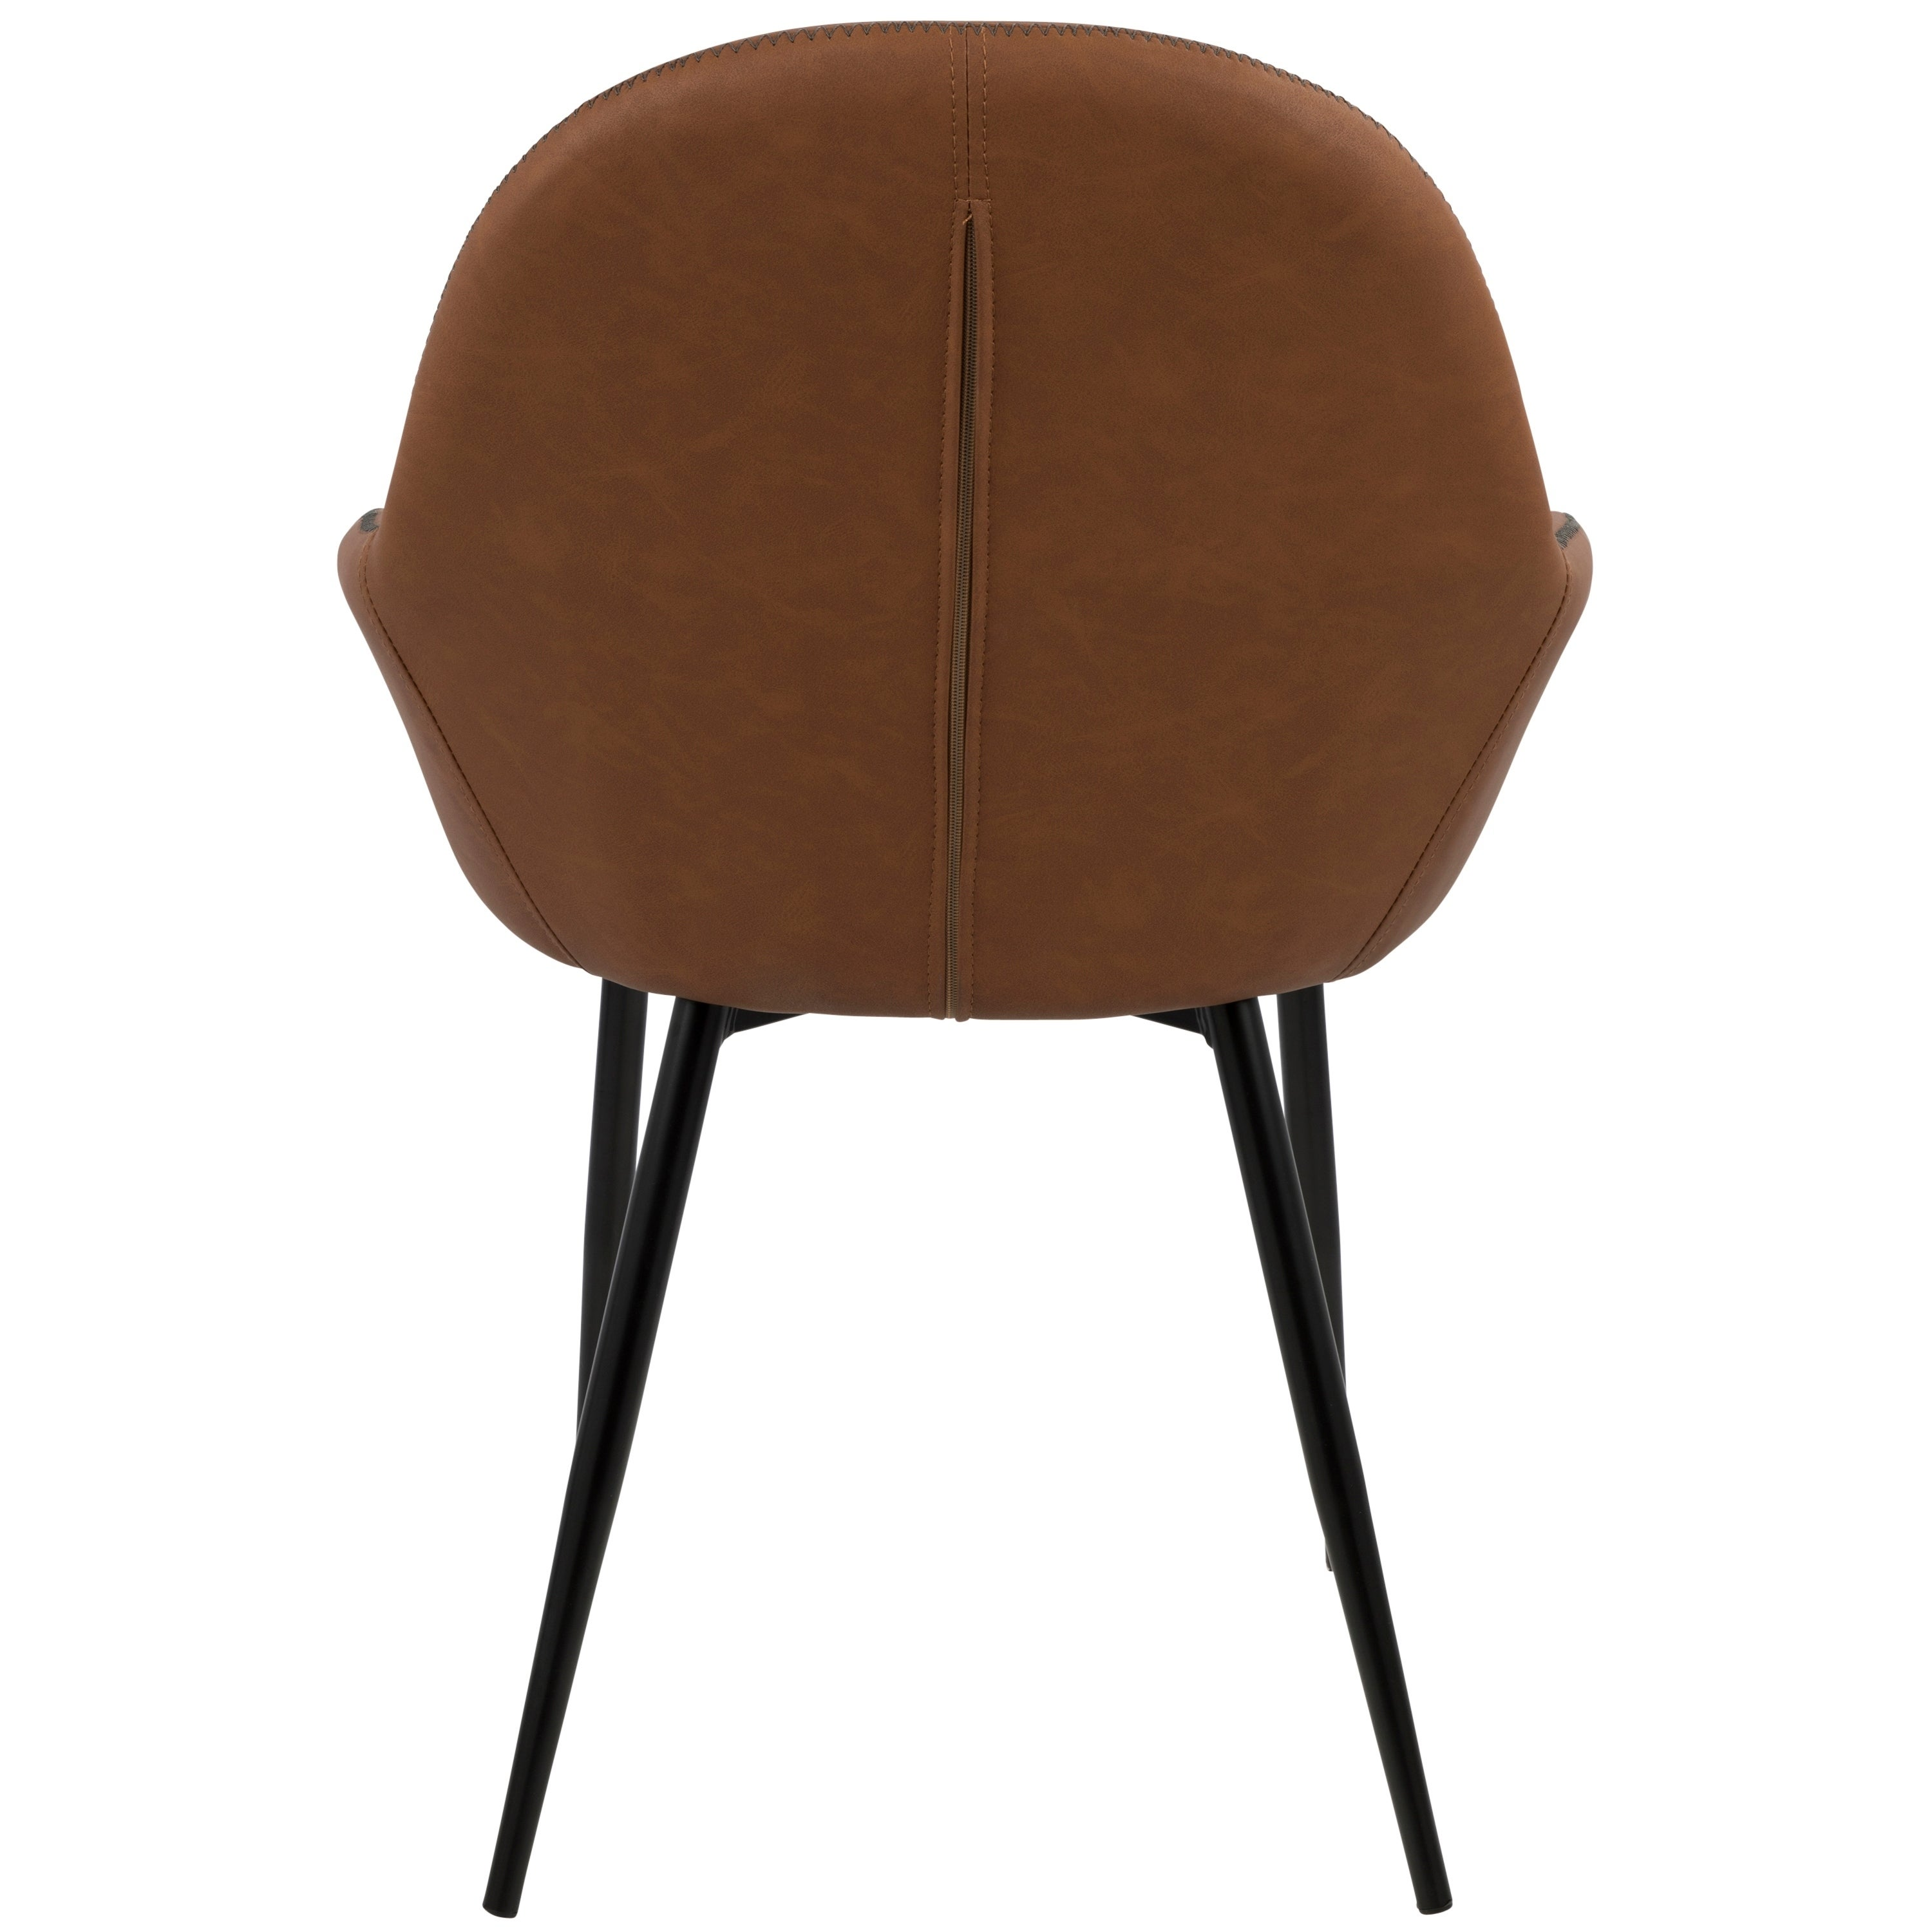 b75558859097 Shop Clubhouse Contemporary Dining Chair with Vintage Faux Leather (Set of  2) - On Sale - Free Shipping Today - Overstock - 17652287